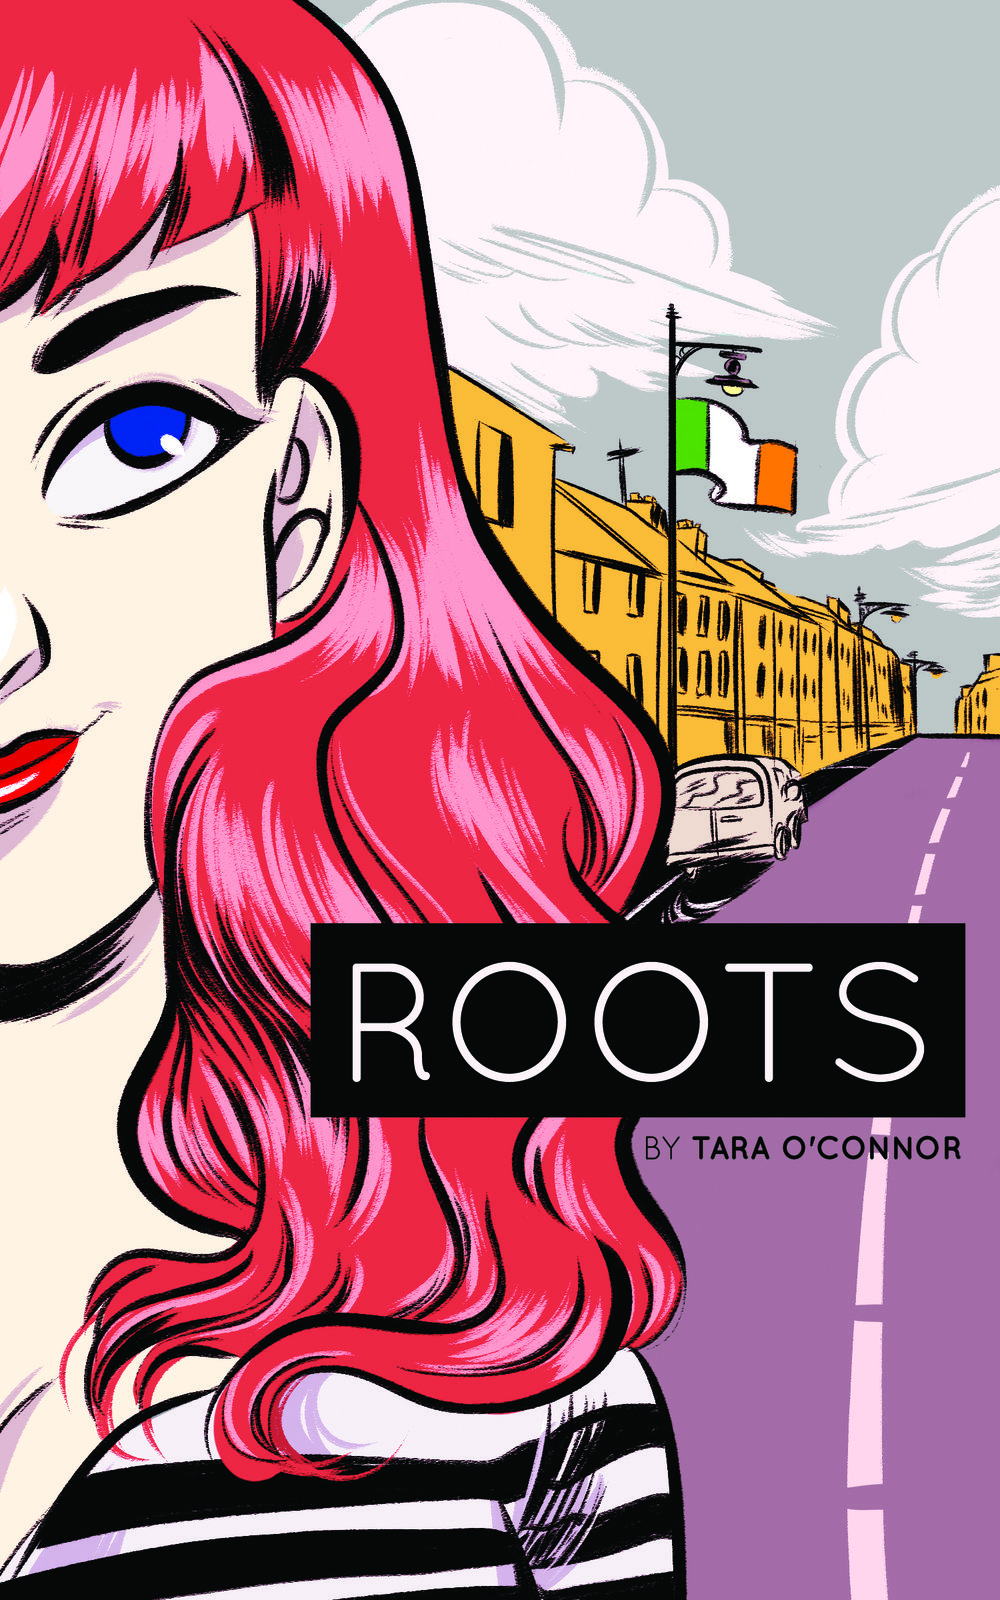 Roots_cover (2).jpg